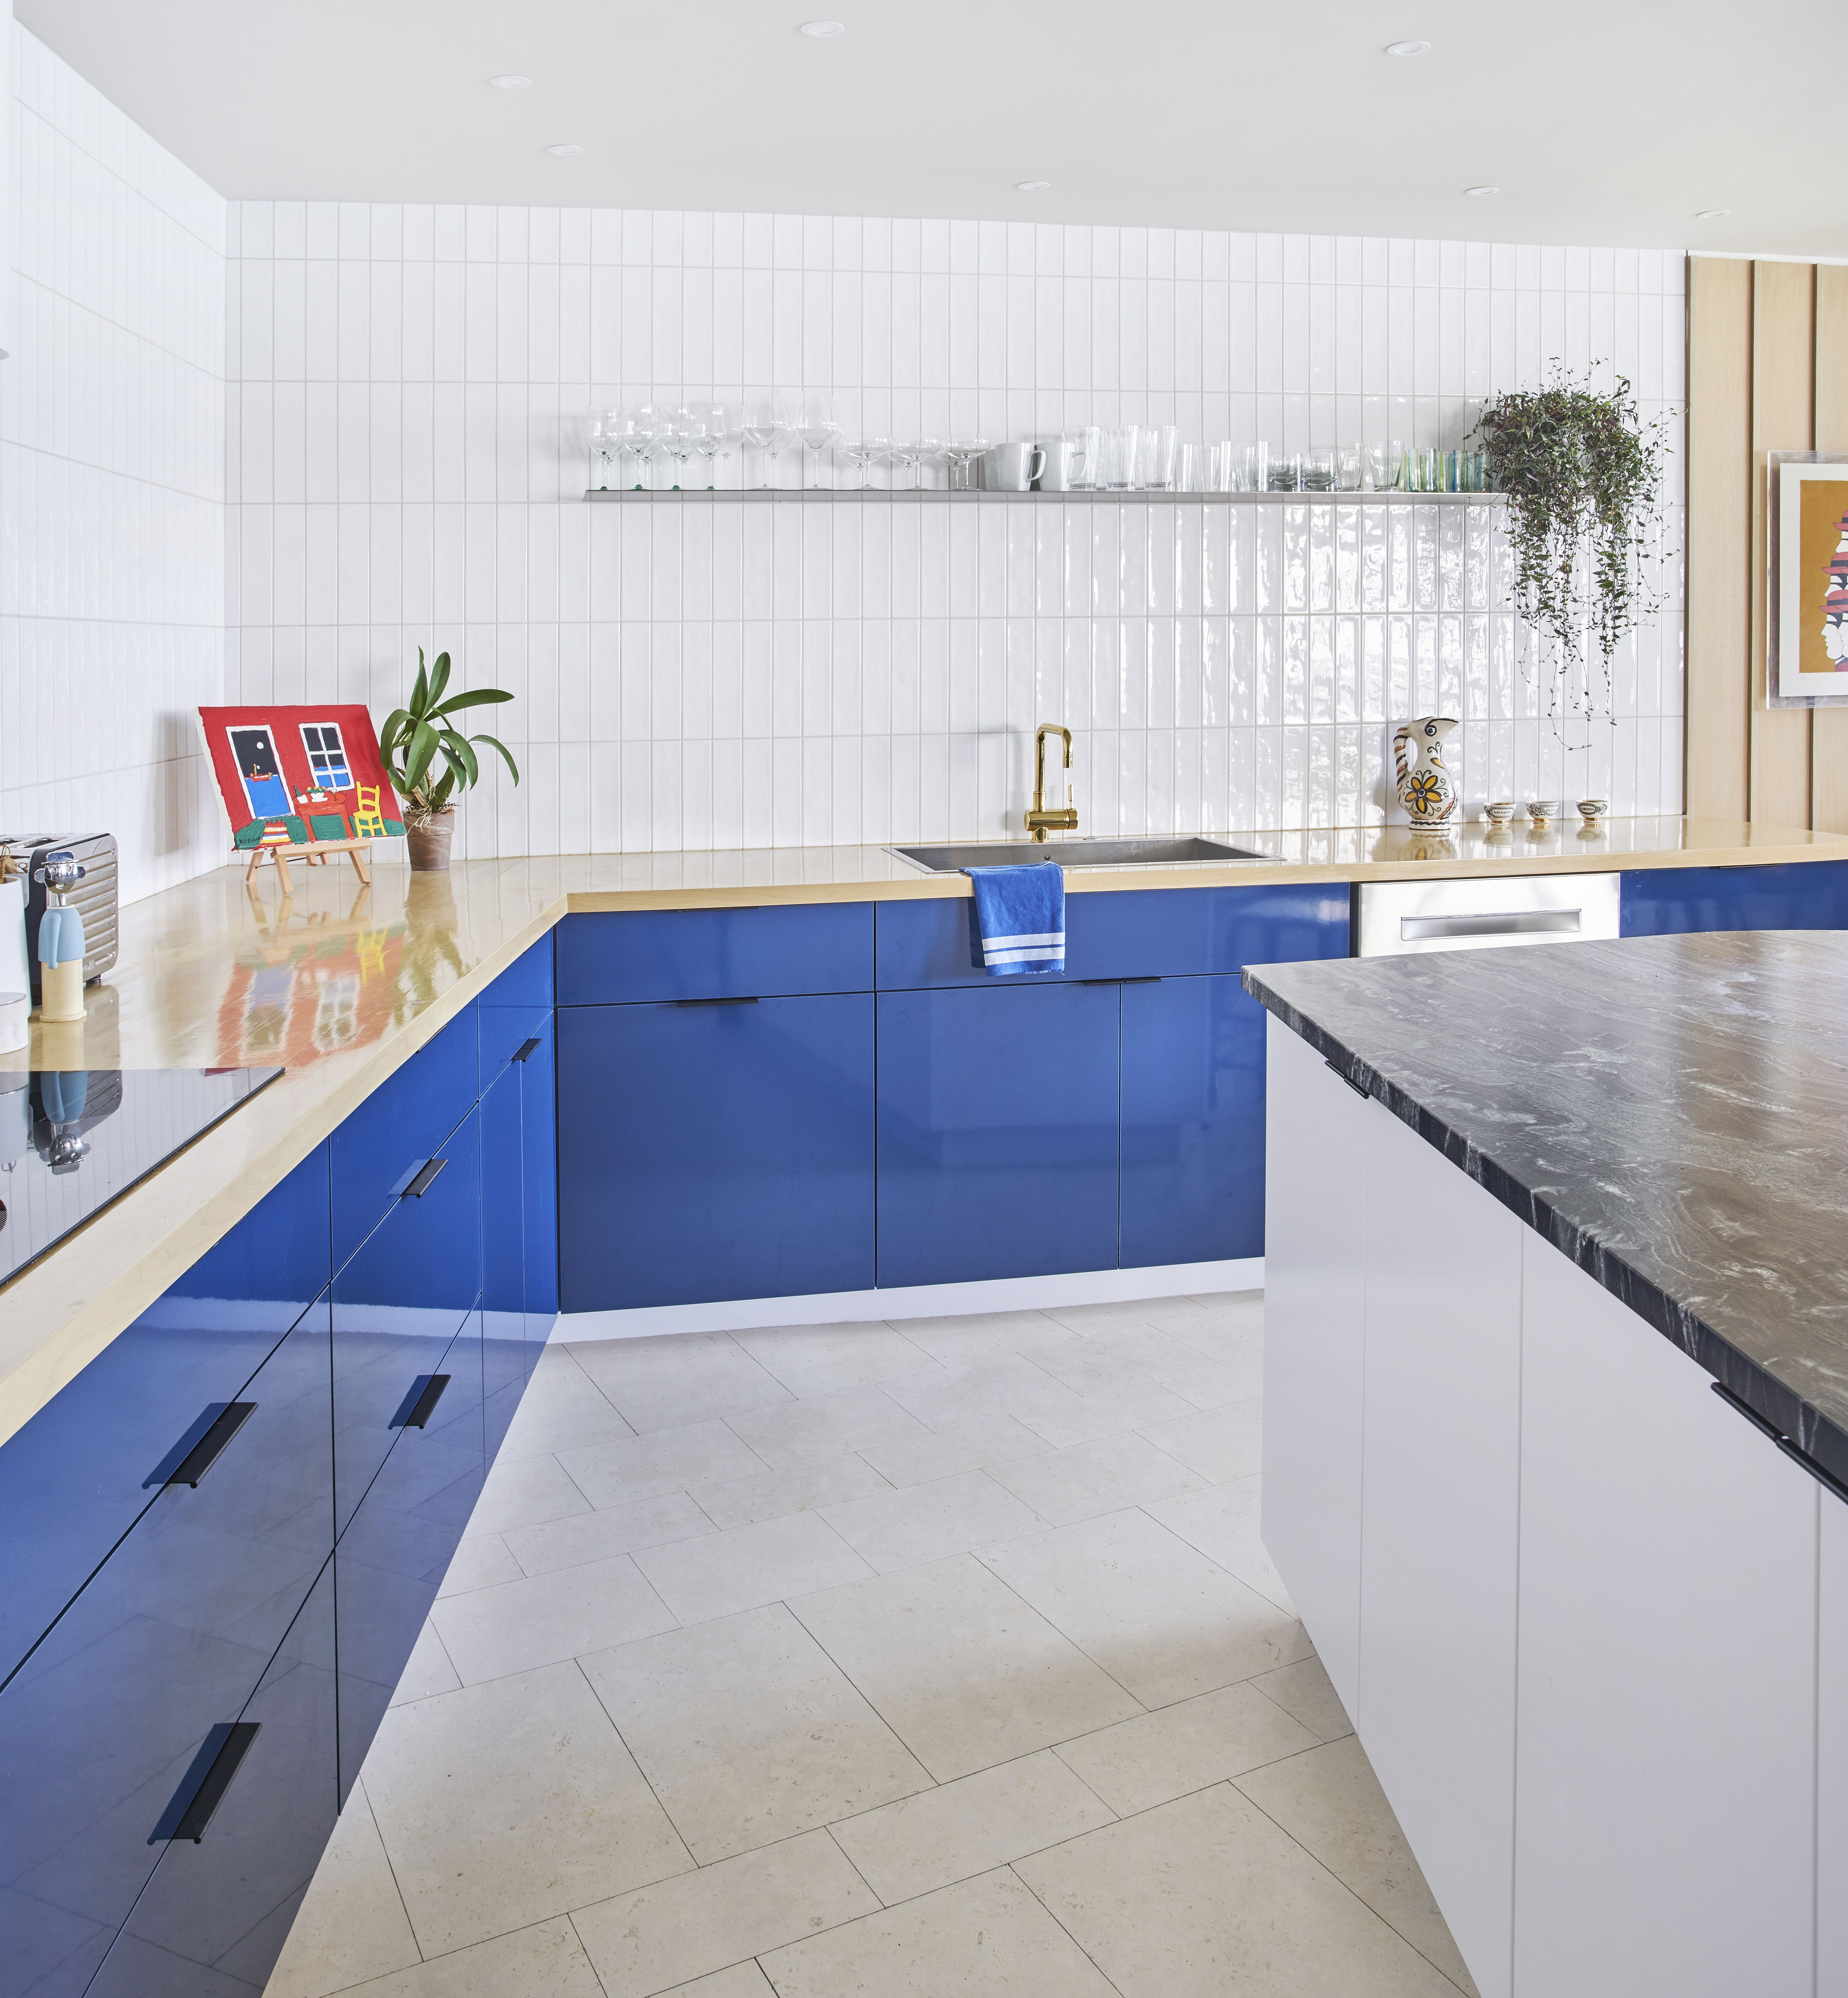 Best Photos from An Interior Designer Helps His Mother Turn Her ...